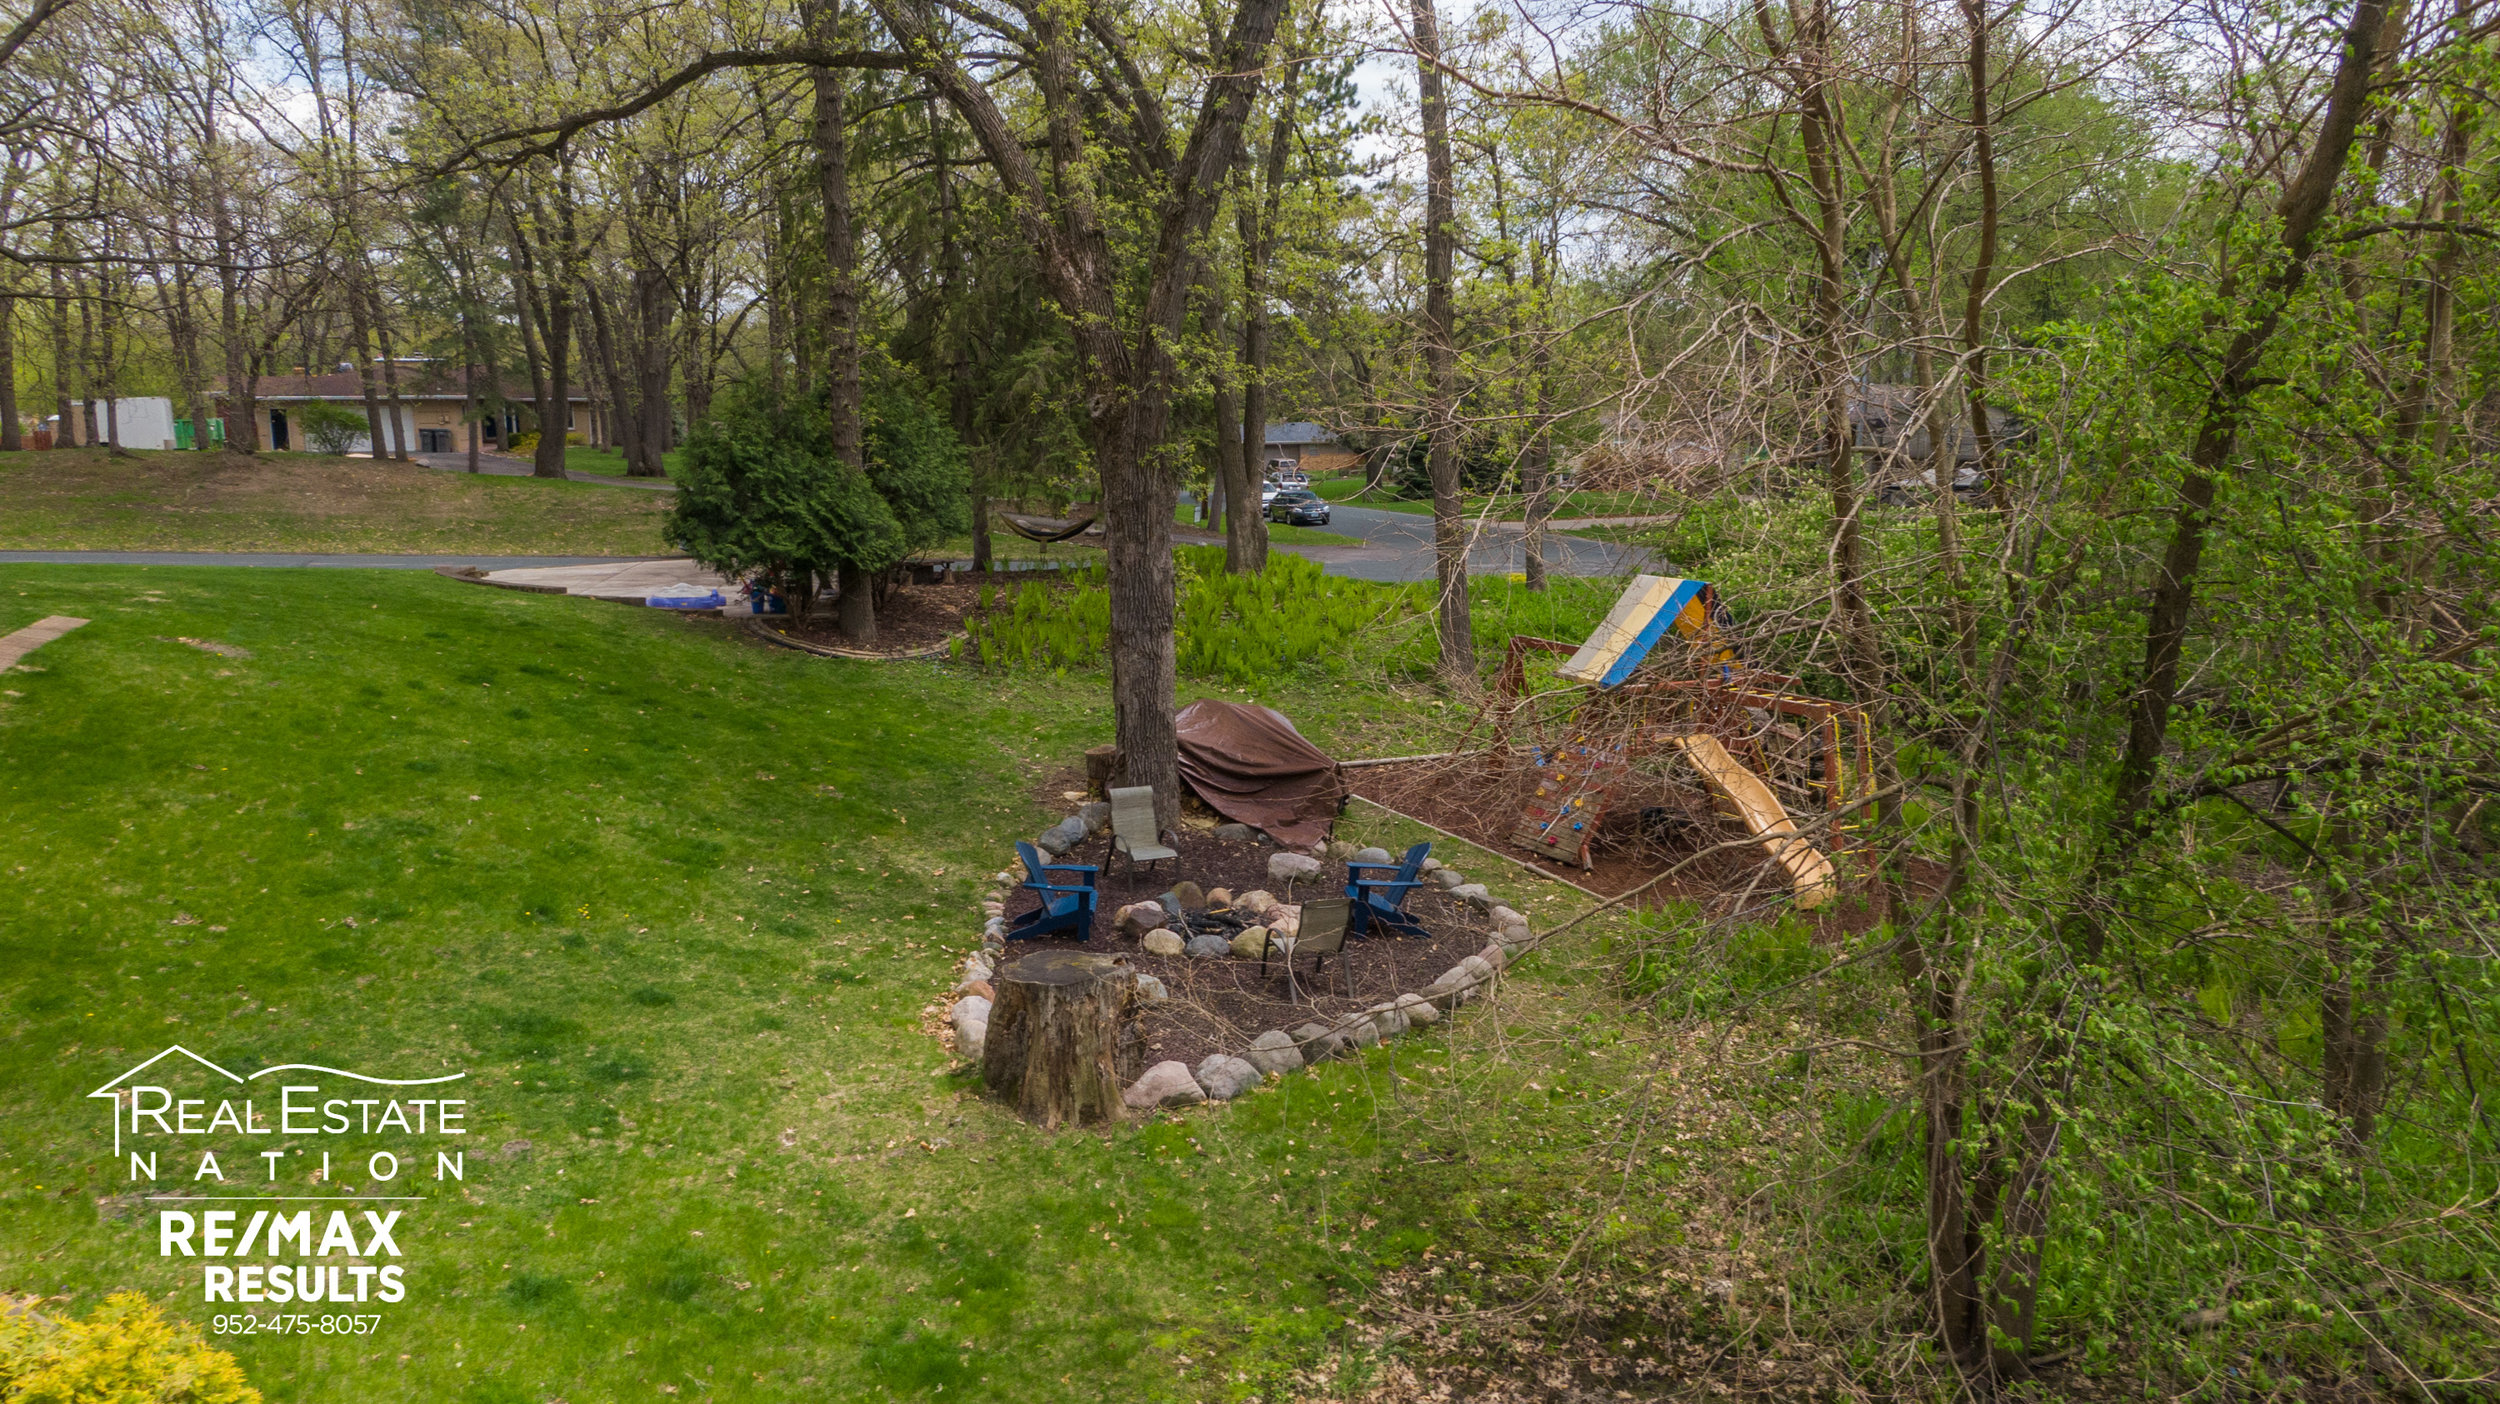 6580 leesborough ave, eden prairie mn brand-18.jpg